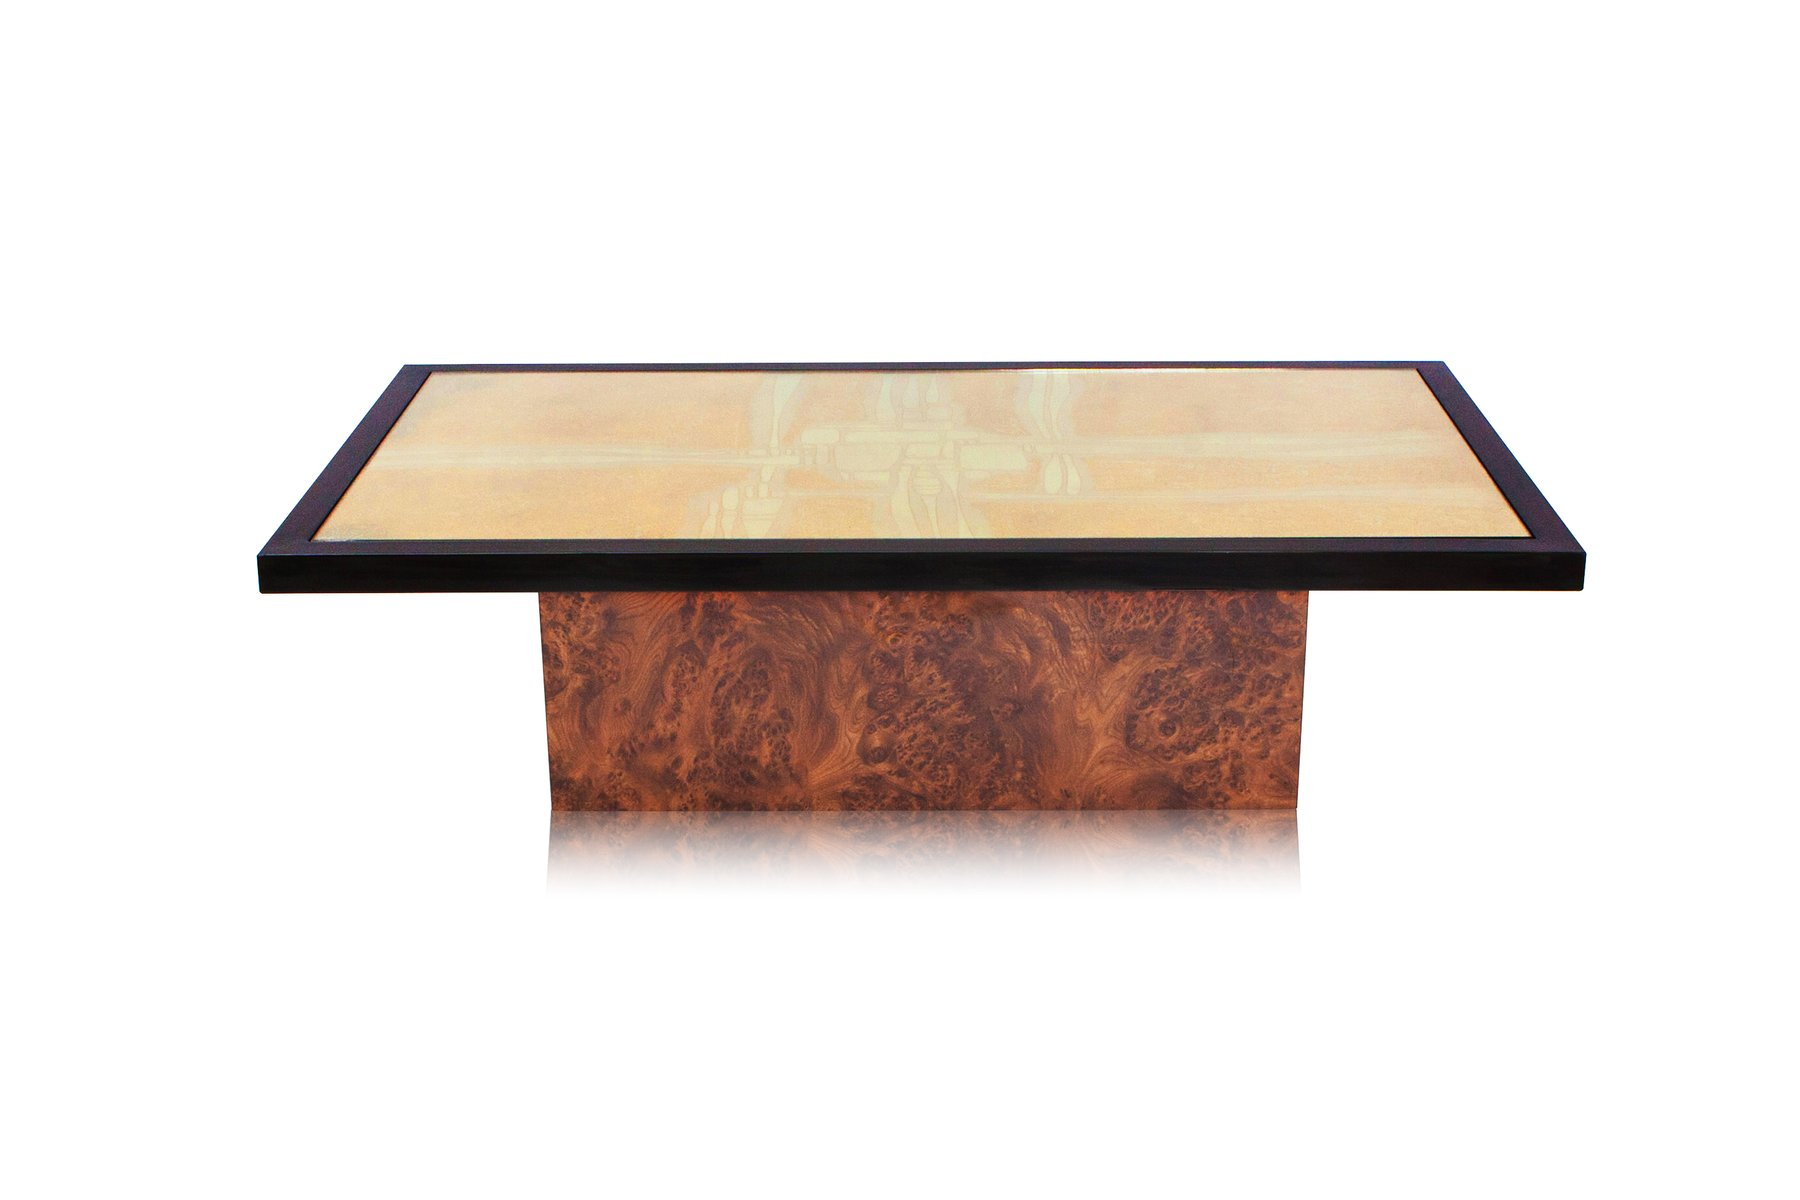 home tables zuo p table safavieh tilly depot antique brass coffee stone the tintern